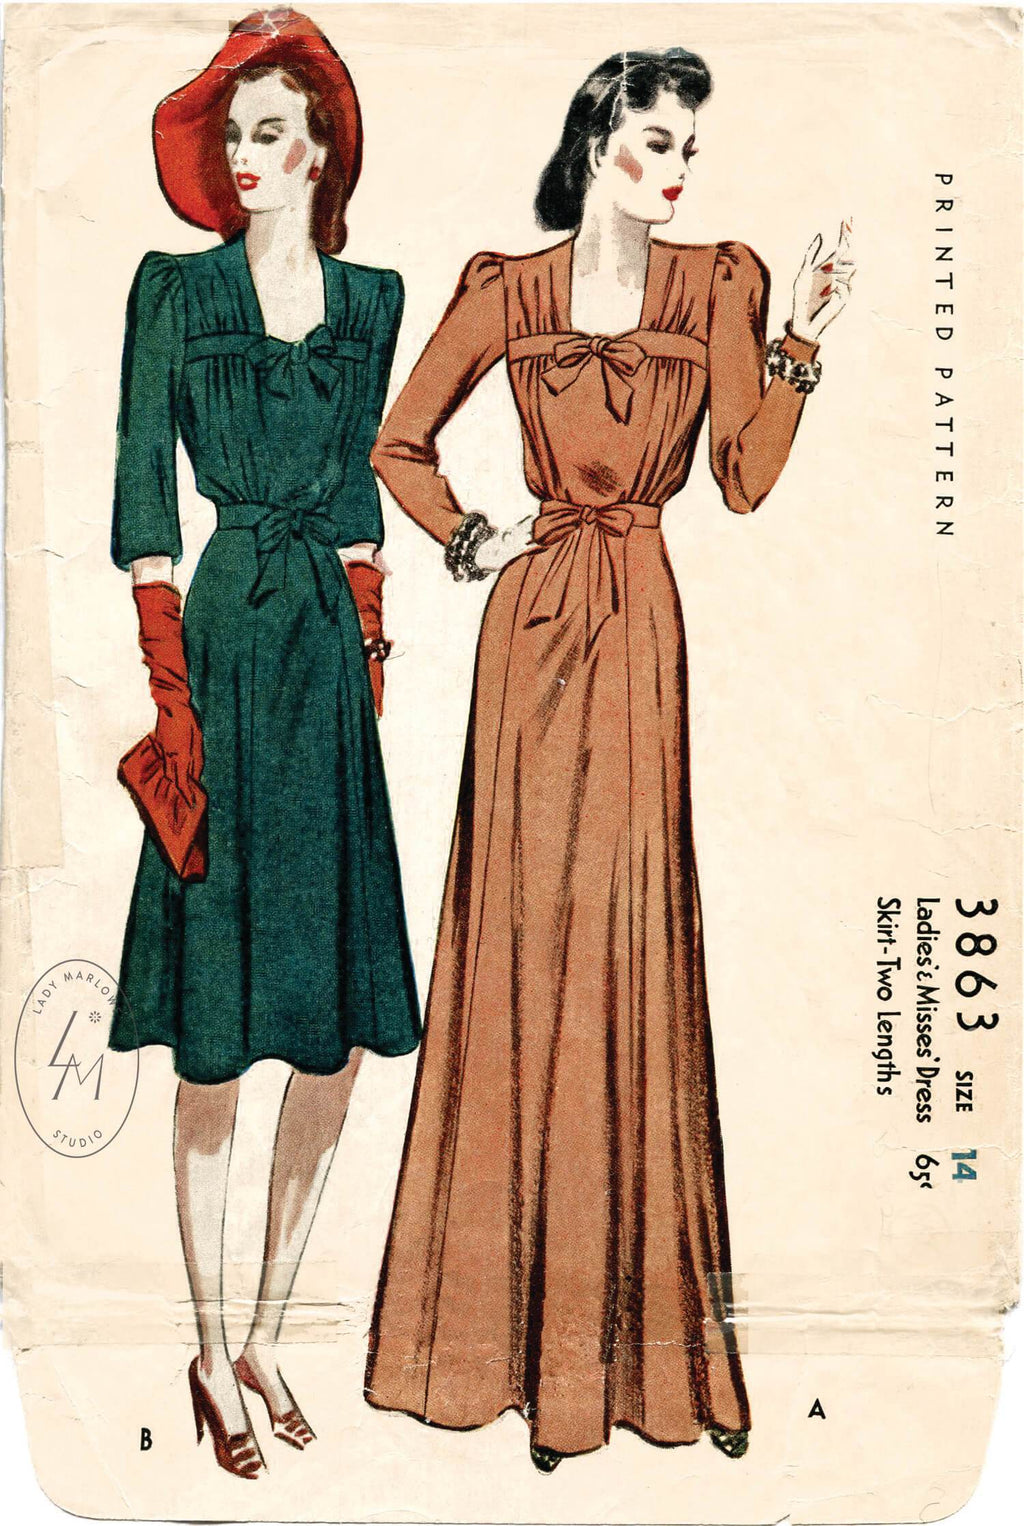 McCall 3863 1940s dress evening gown vintage sewing pattern